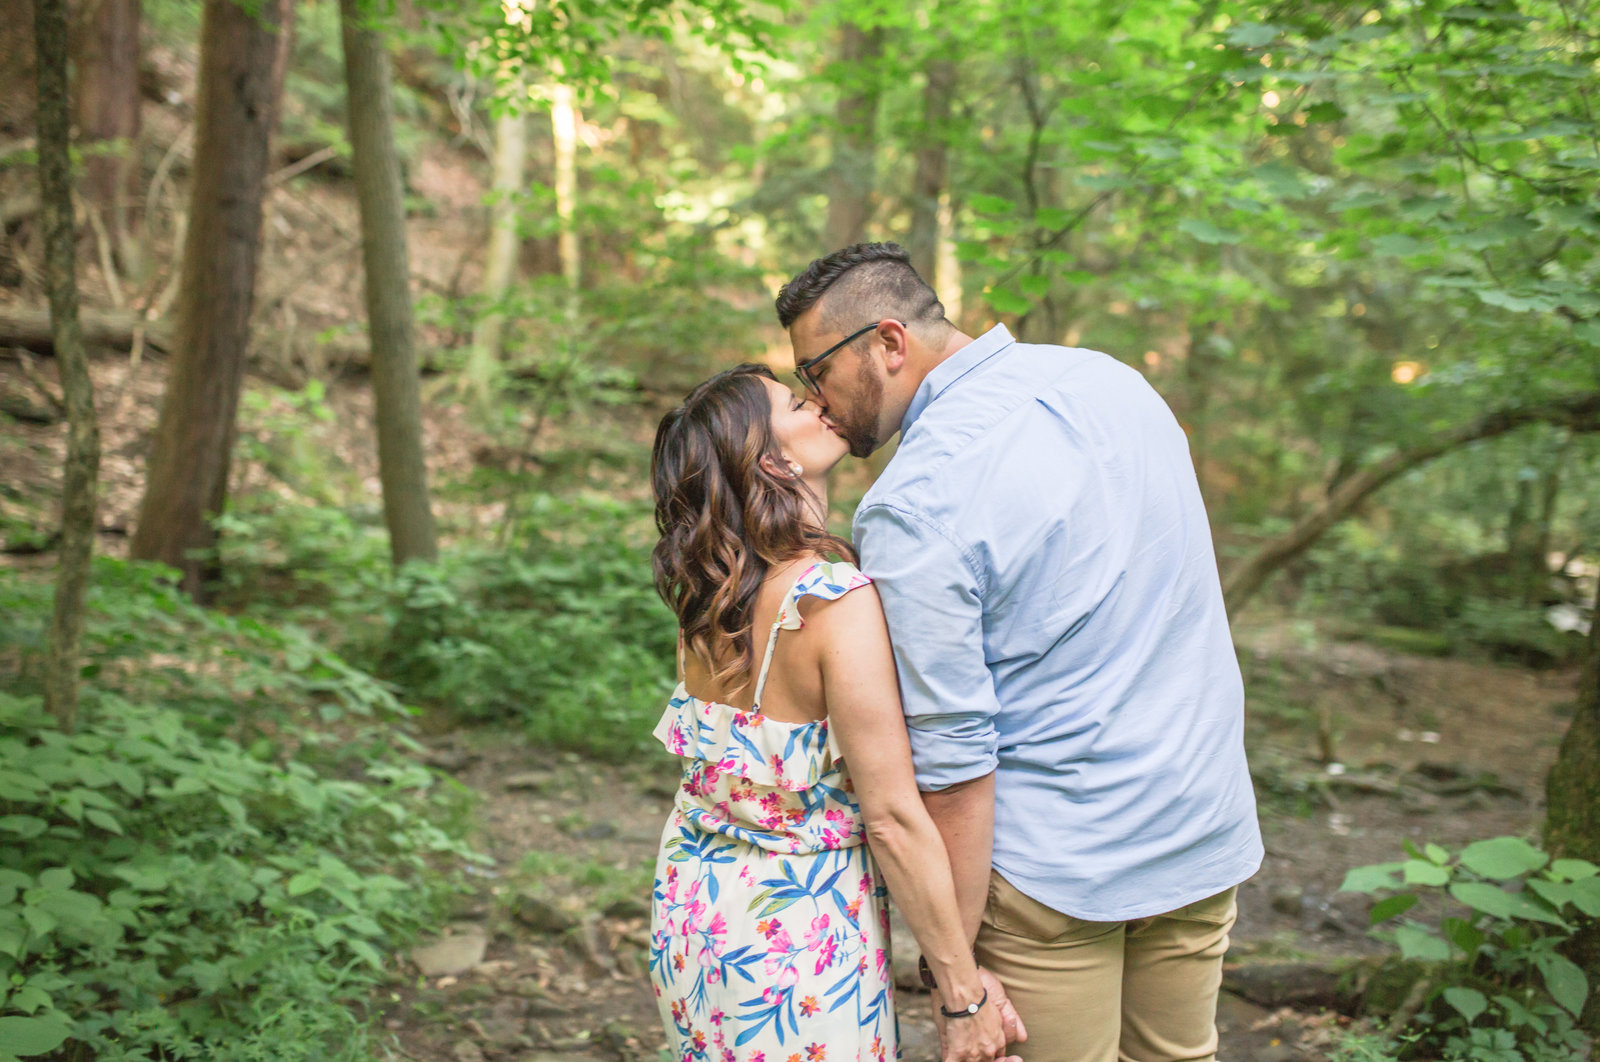 youngstown-mill-creek-park-engagement-session-allison-ewing-photography-001-1